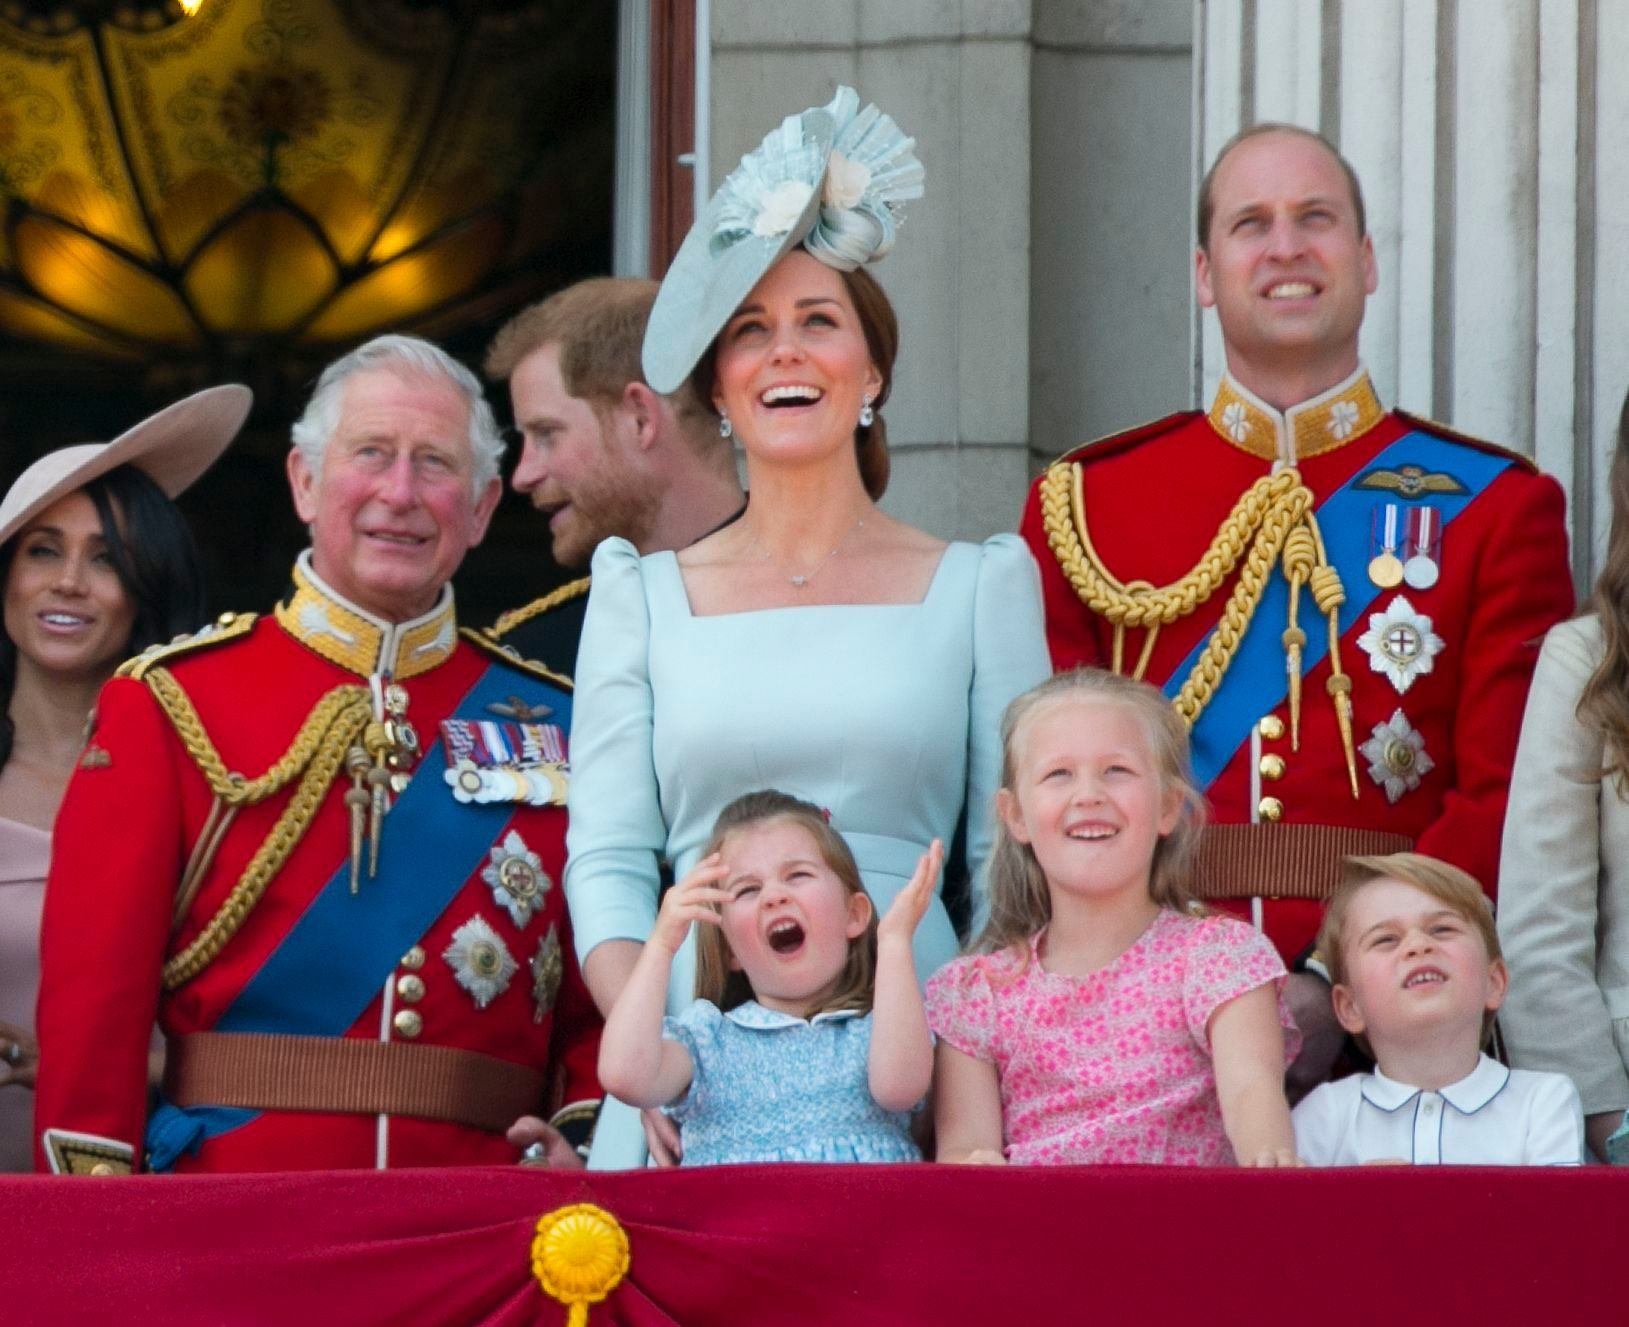 Trooping the Colour ceremony, London, UK - 09 Jun 2018